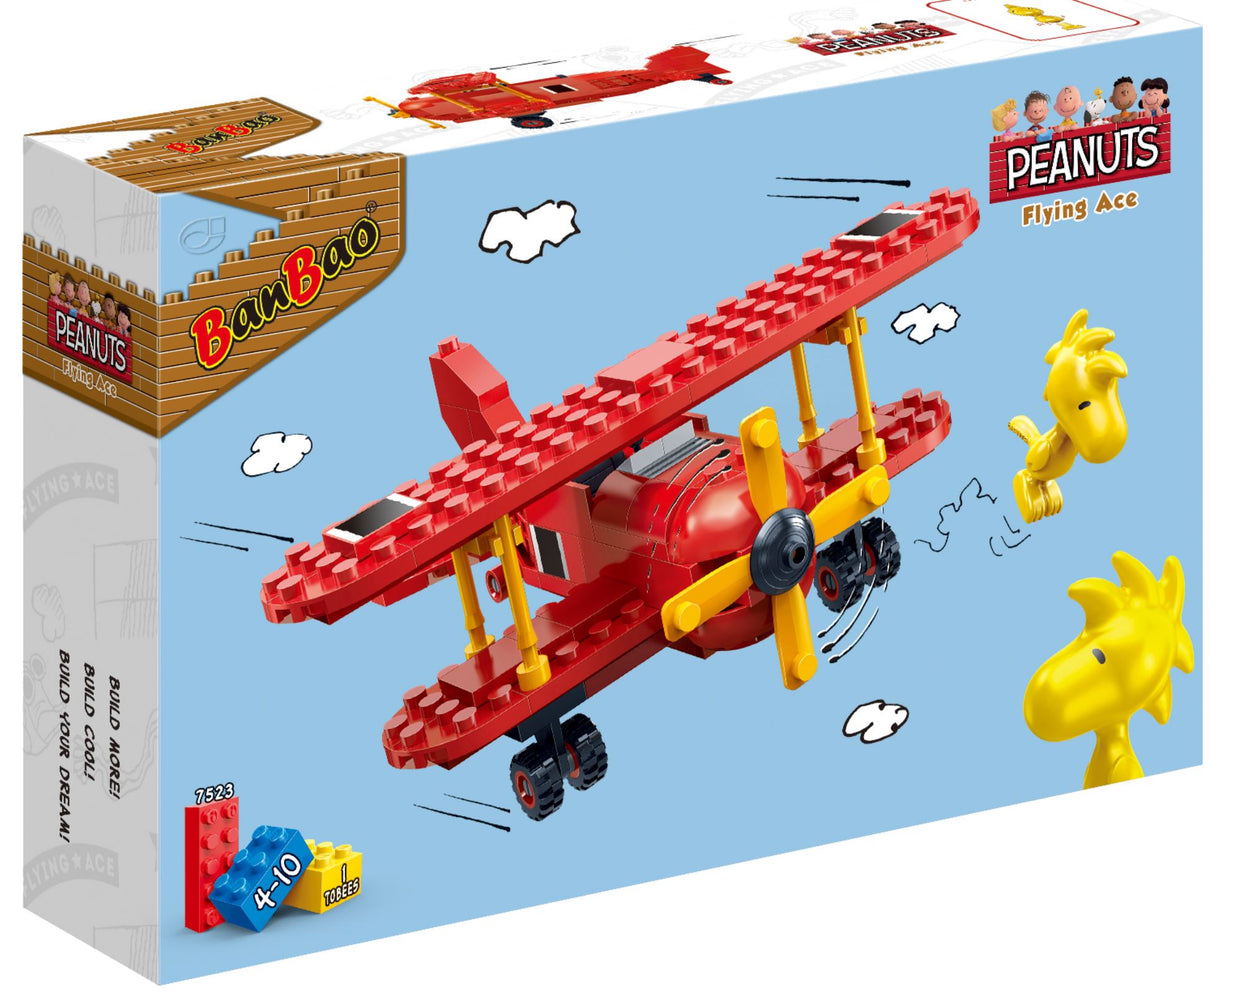 Peanuts - Flying Ace (Red)